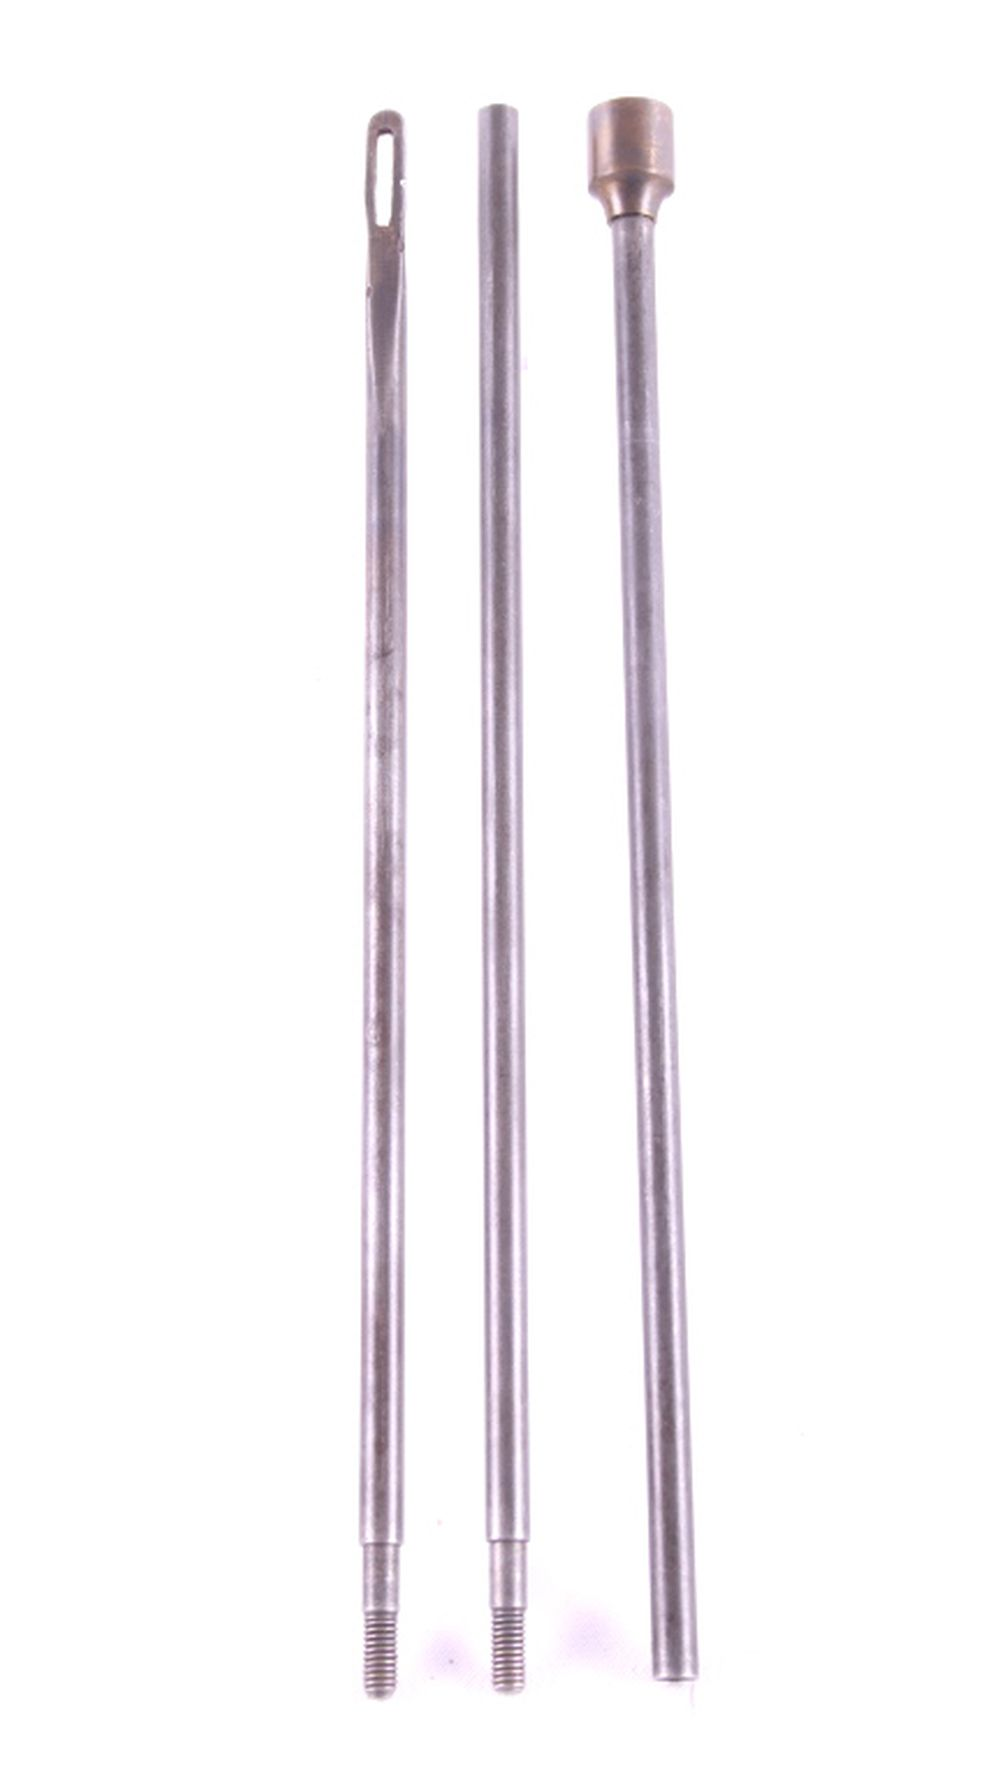 Winchester Cleaning Rod For 1873 Carbine Rifle